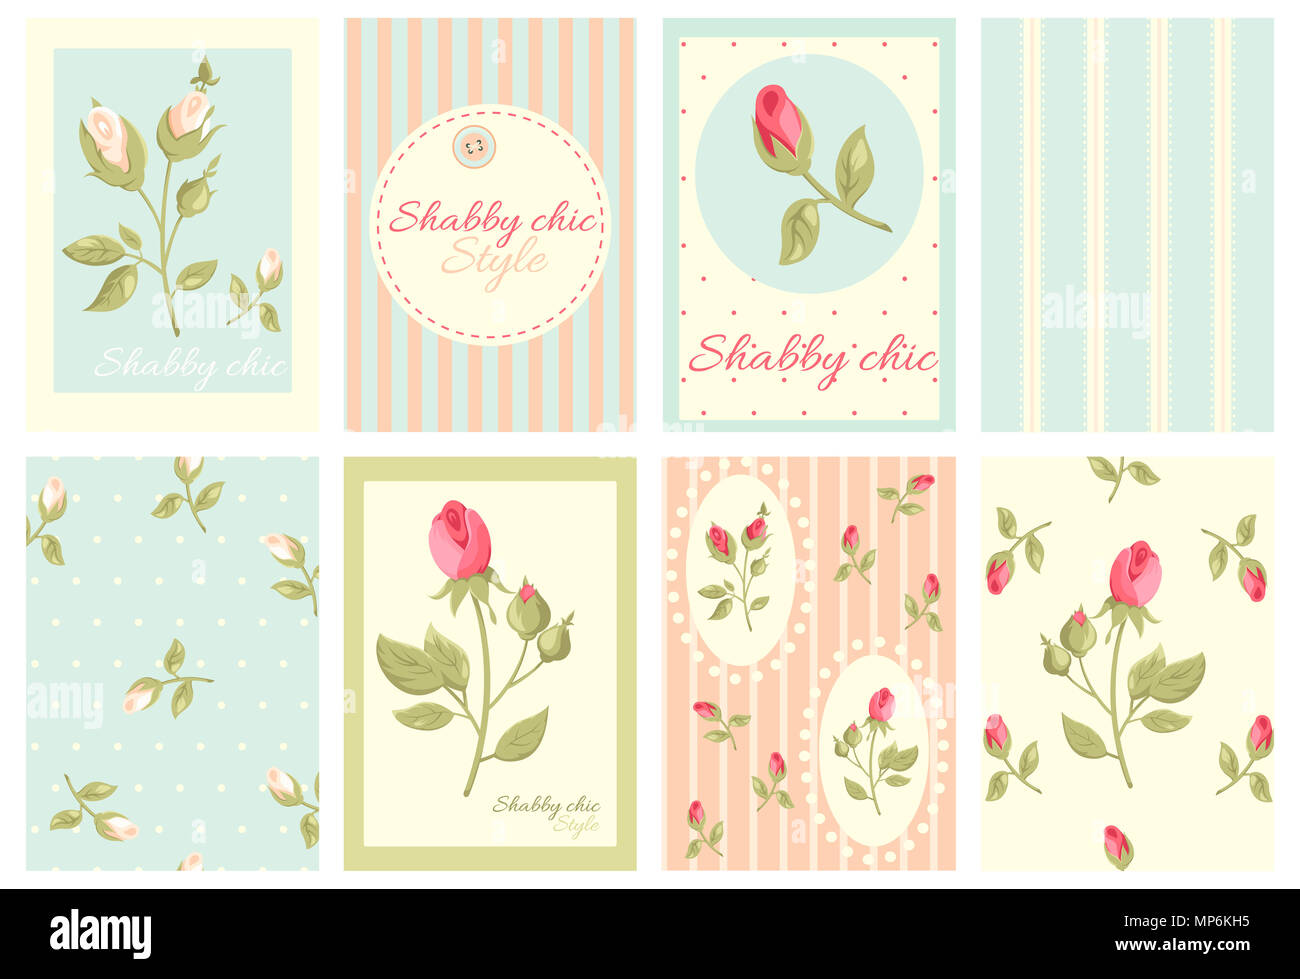 Set Of Vintage Banner Flyer Placard In Shabby Chic Style With Rose And Inscription Label Sticker For Scrapbooking Vector Template Card Dec